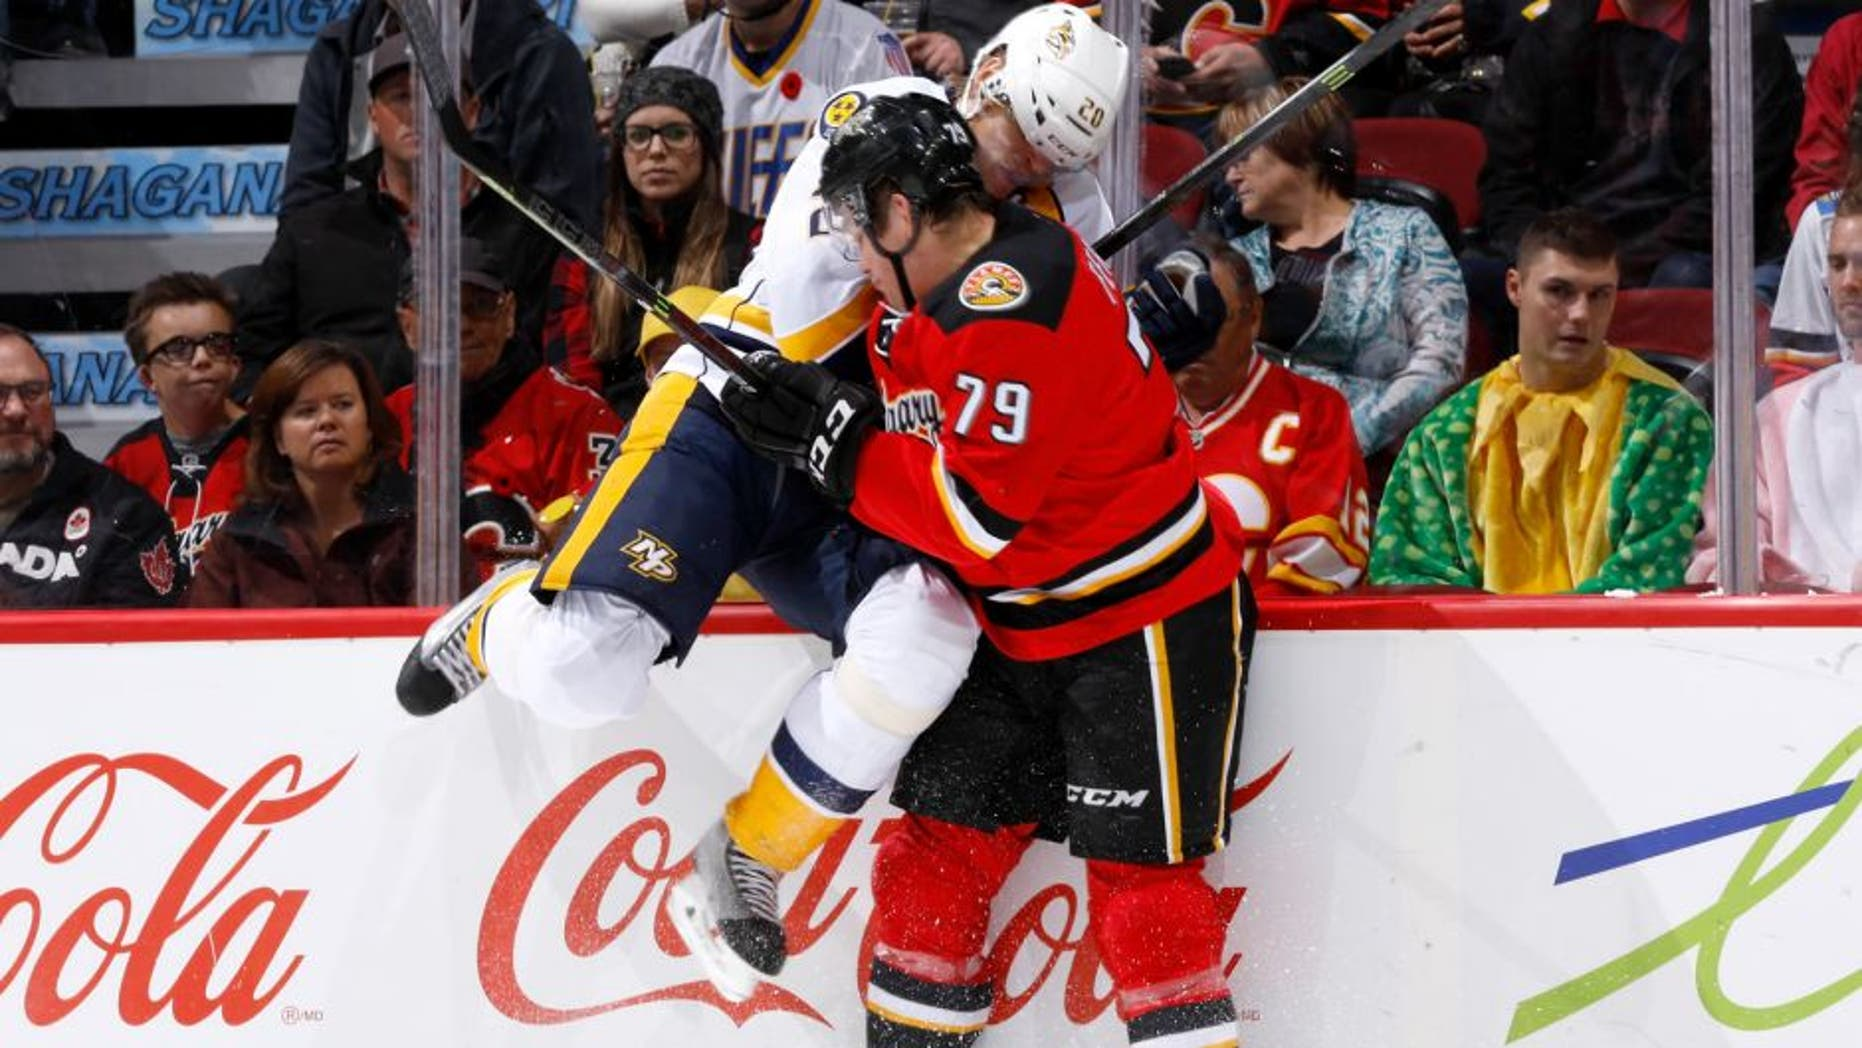 CALGARY, AB - OCTOBER 31: Michael Ferland #79 of the Calgary Flames checks Anton Volchenkov #20 of the Nashville Predators into the boards at Scotiabank Saddledome on October 31, 2014 in Calgary, Alberta, Canada. (Photo by Gerry Thomas/NHLI via Getty Images)